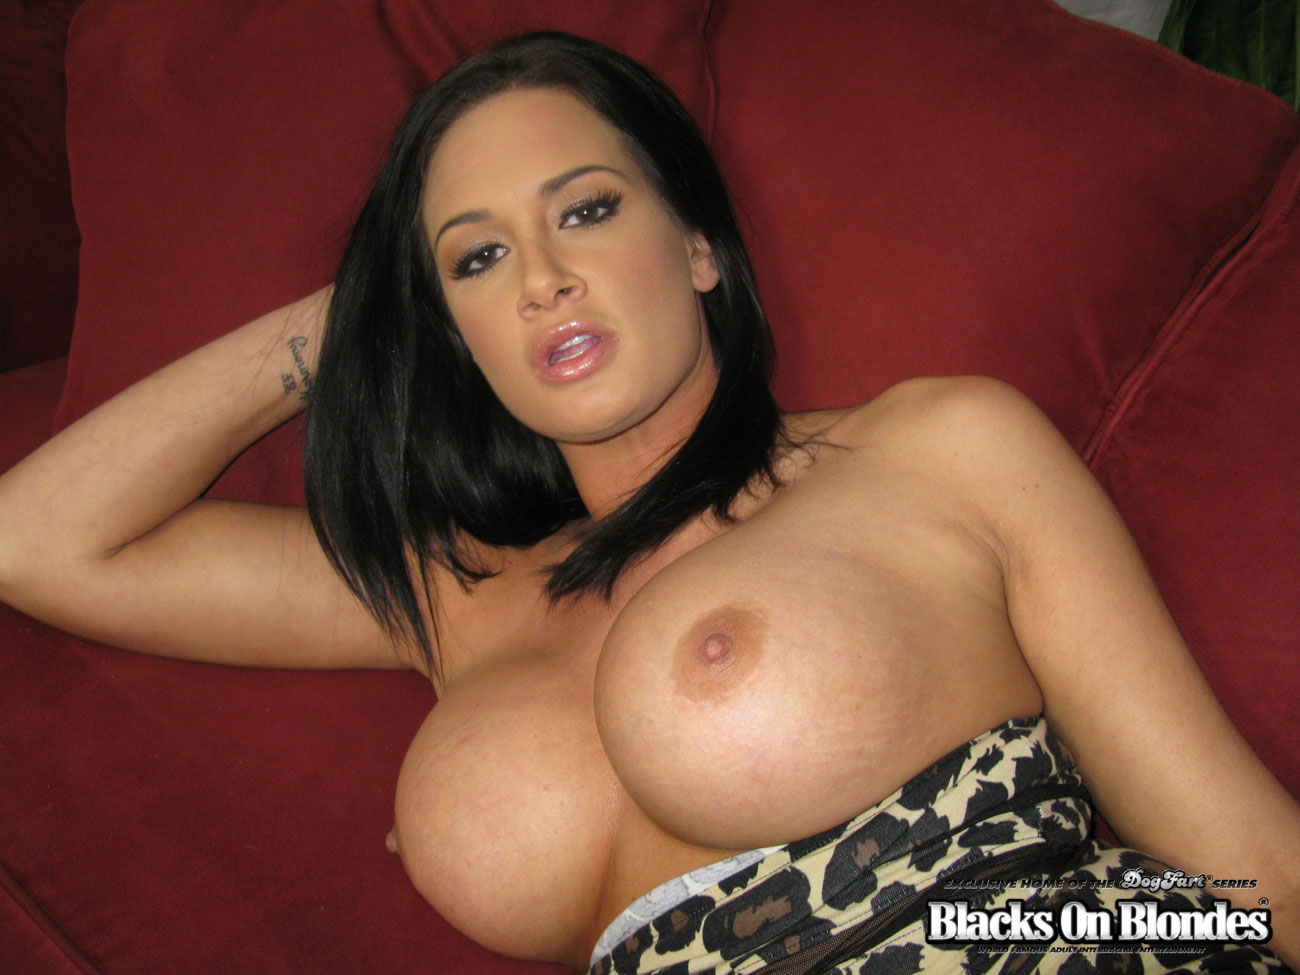 pahahu75s soup Big Butts Like It Big present free hardcore sex videos of Shyla Stylez Alexis Texas Katja Kassin and Tory Lane.